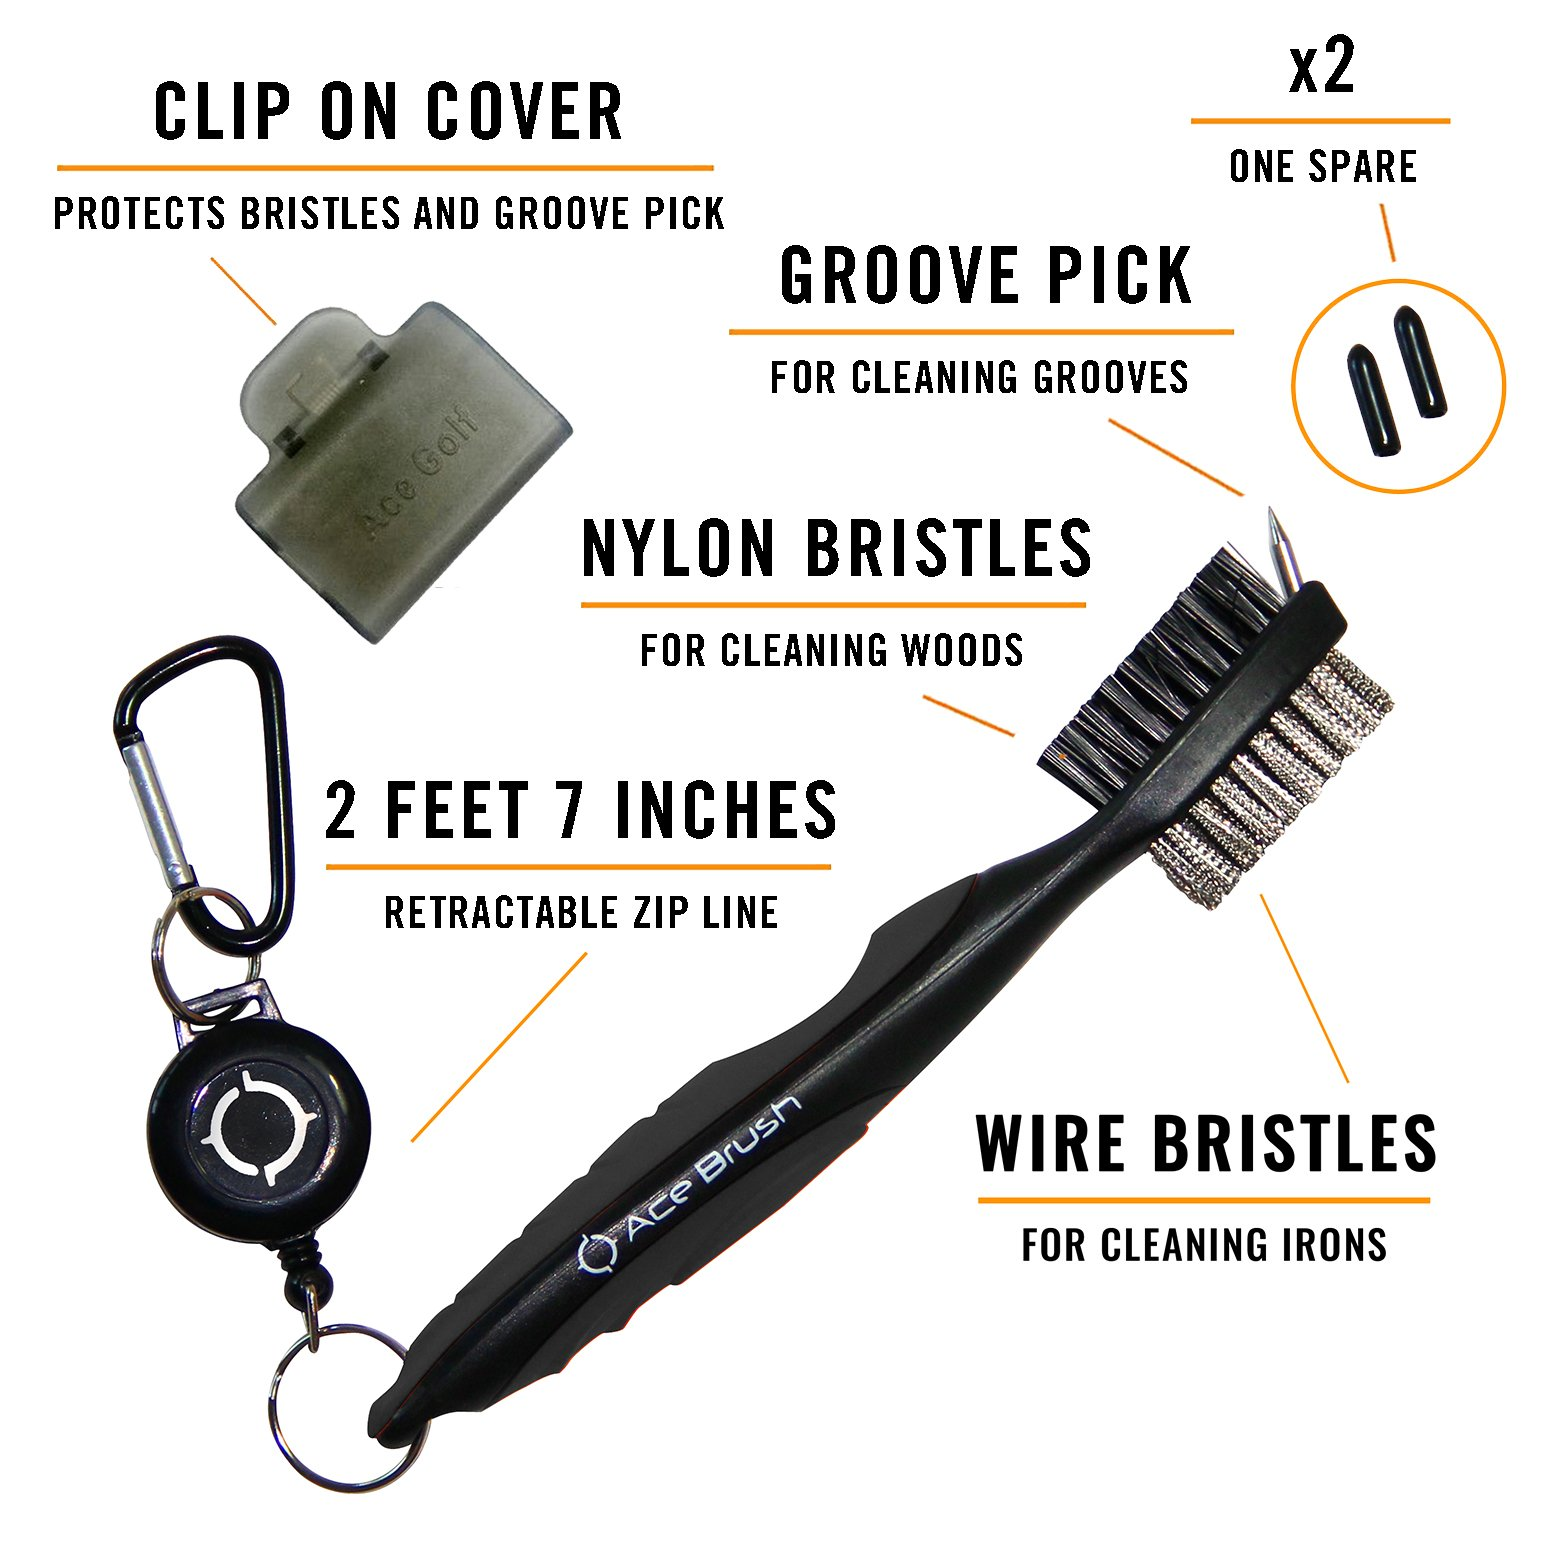 Ace Golf Brush and Club Groove Cleaner Set with Divot Tool, Ball Marker, Groove Sharpener, 2 Feet Retractable Zip-line Aluminum Carabiner, Attaches Golf Bags - Black - Deluxe by Ace Golf (Image #2)